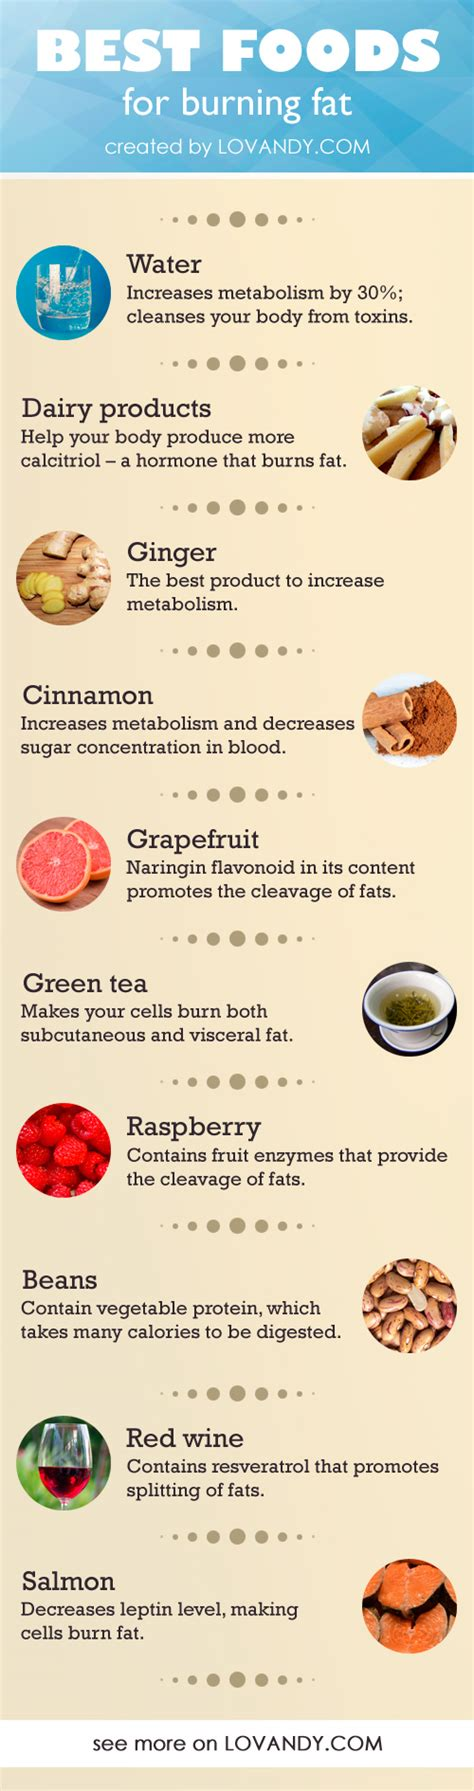 Burning Foods by List Of Foods That Boost Metabolism And Burn Foodfash Co